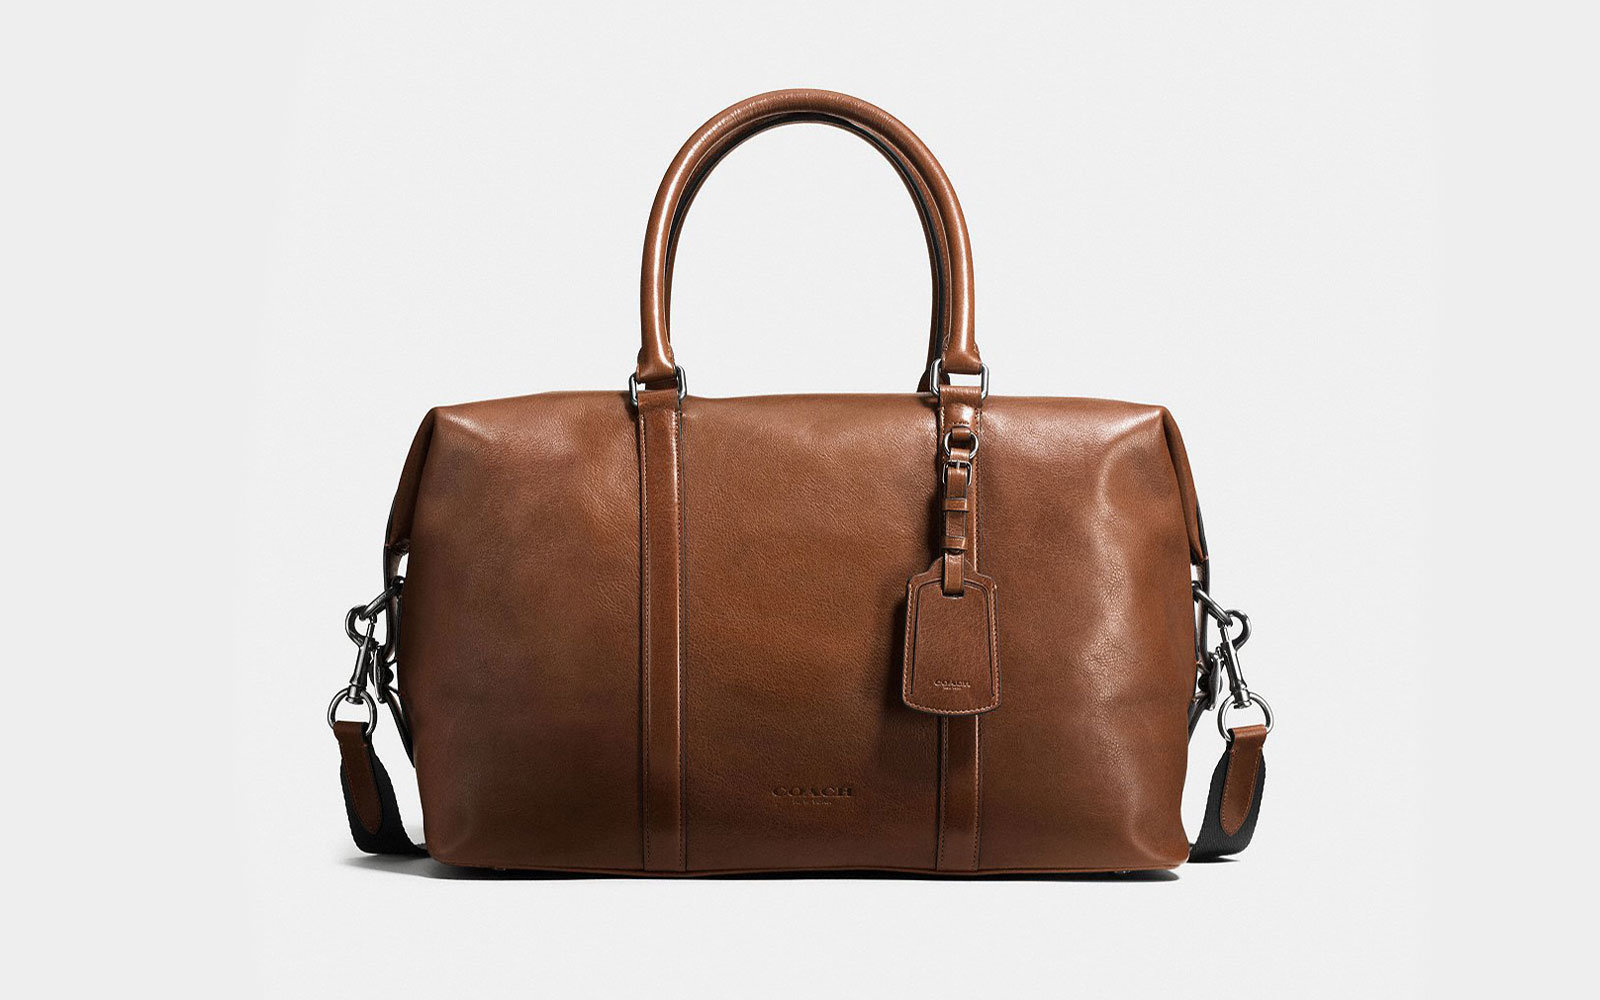 c60e4f06f4ce The Best Leather Duffel Bags